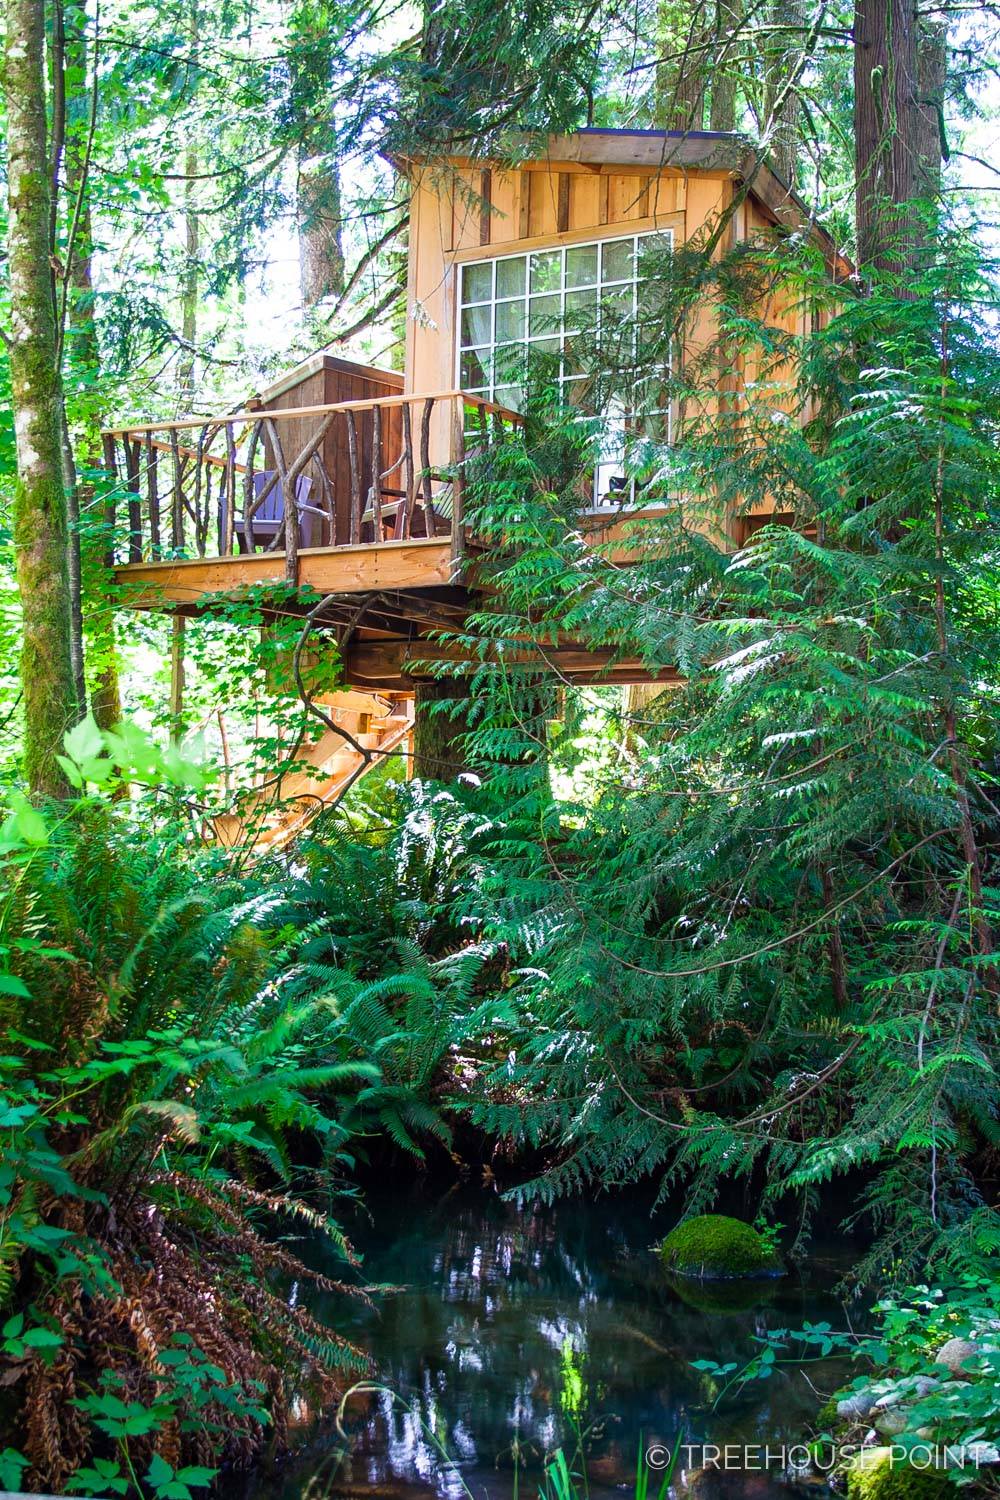 The nest is the only treehouse with a theme: it's designed and decorated to subtly allude to a bird's nest.